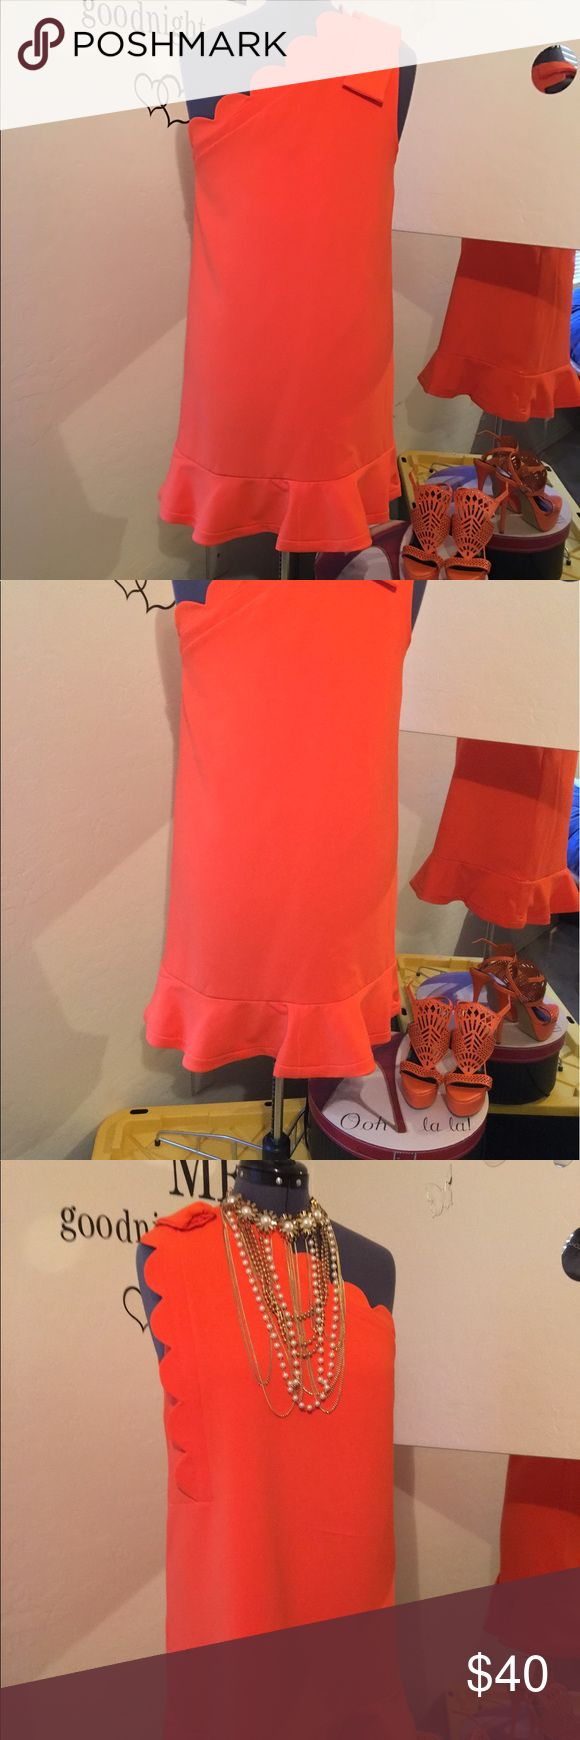 Victoria Beckham design Target Bright orange dress Beautiful bright orange off shoulder fully lined dress. Great summer or fall dress. Great material.  I have paired with orang platform shoes for a great look .  Bundle size 6 shoes get 10% off whole outfit Victoria Beckham for Target Dresses Midi